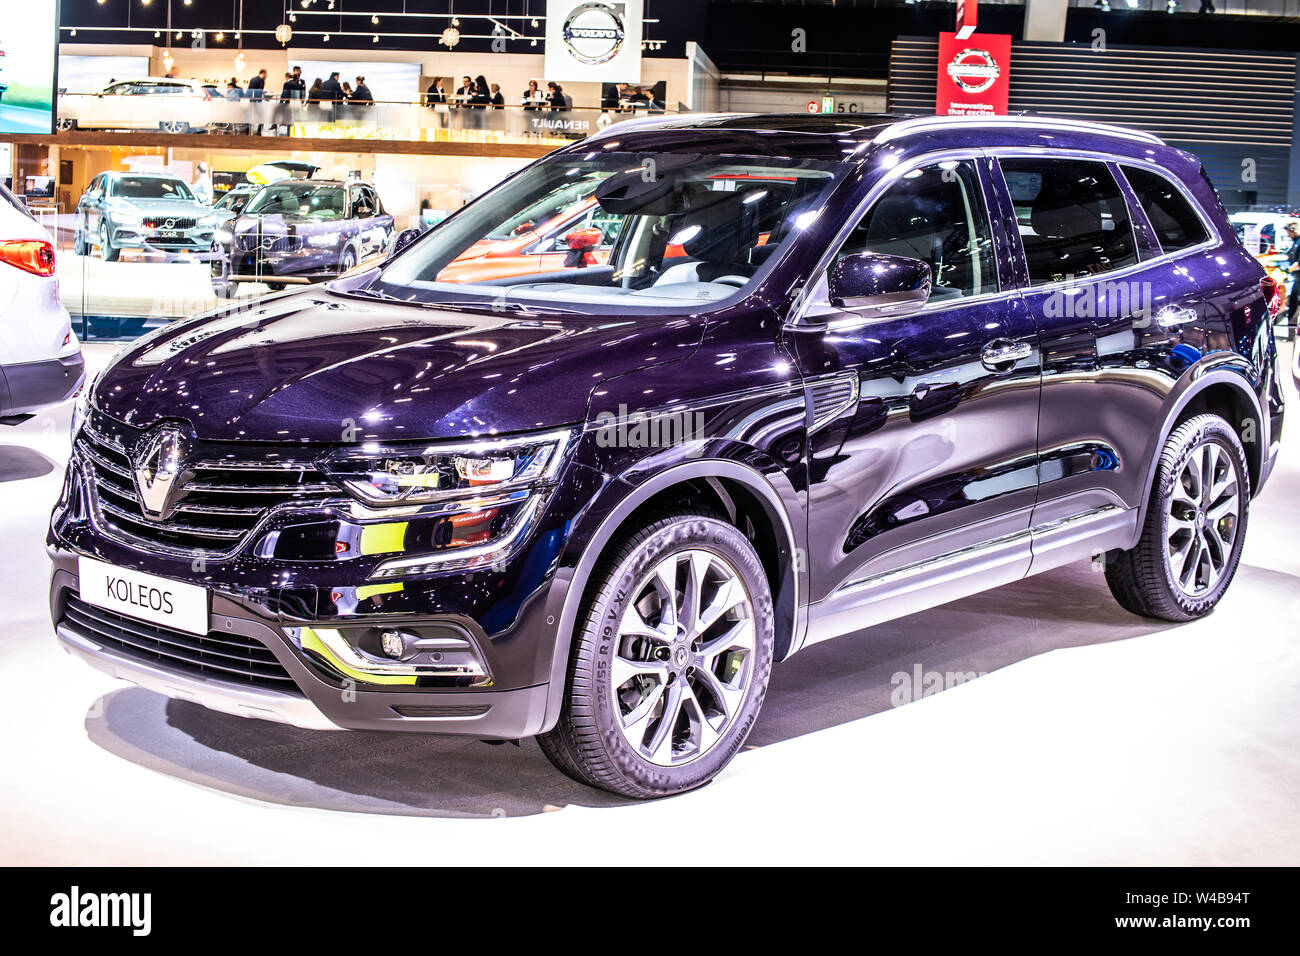 Brussels Belgium Jan 2019 Renault Koleos At Brussels Motor Show Second Generation Cmf Cd Platform Mid Size Suv Produced By Renault Stock Photo Alamy